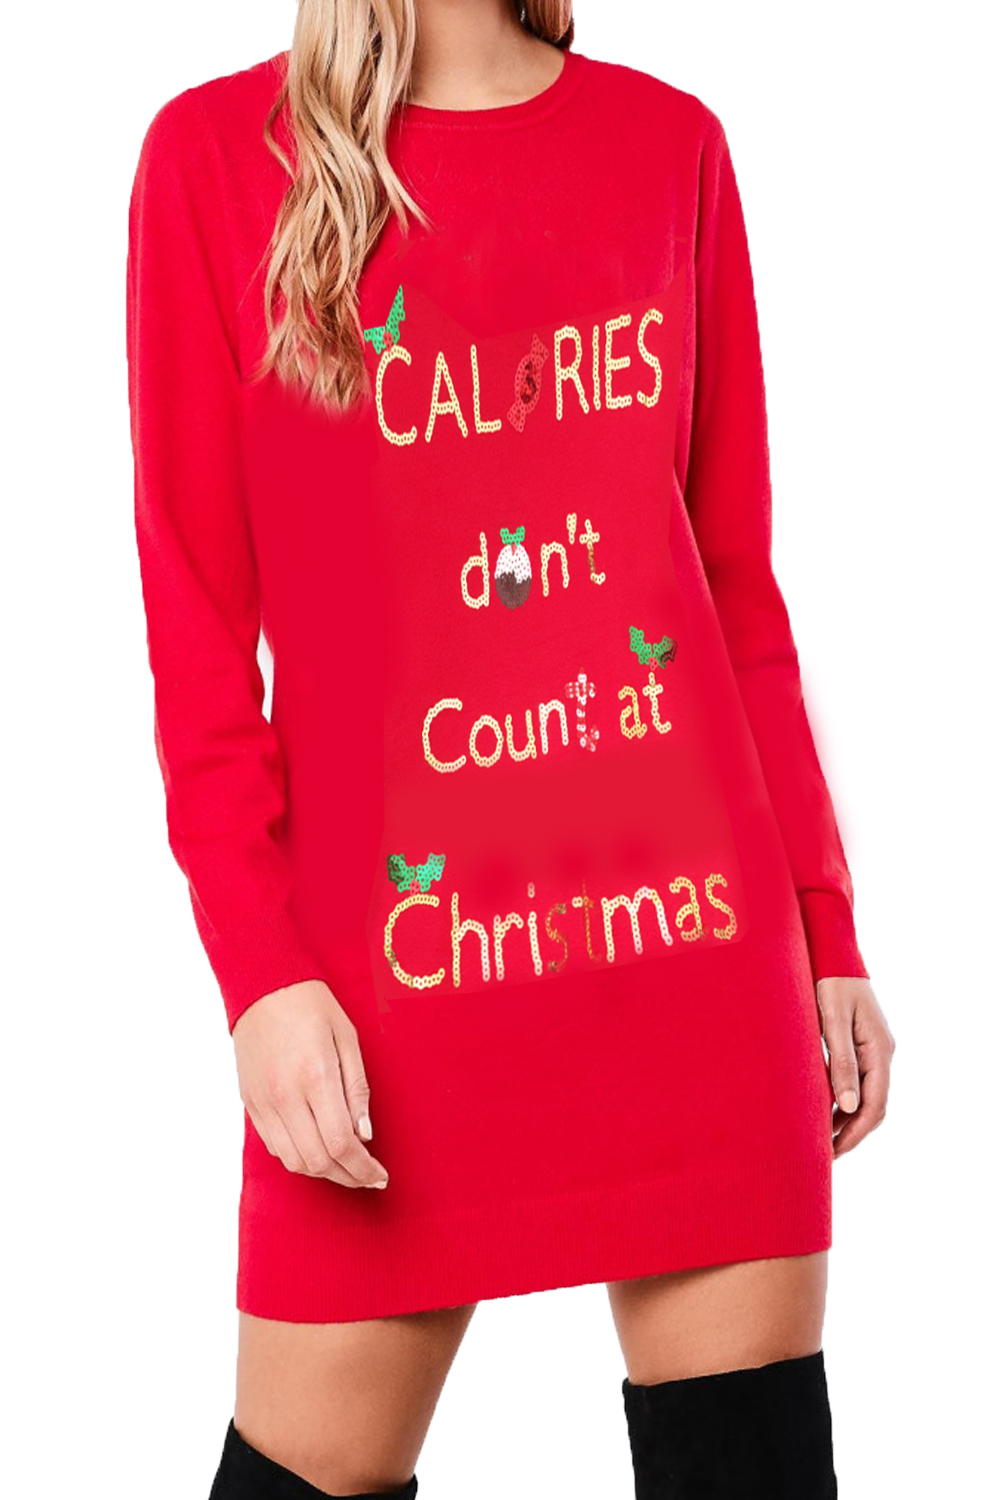 Heart-And-Soul-Womens-Sequin-Christmas-Tunic-Jumpers-Ladies-Novelty-Knitted-Tops thumbnail 5